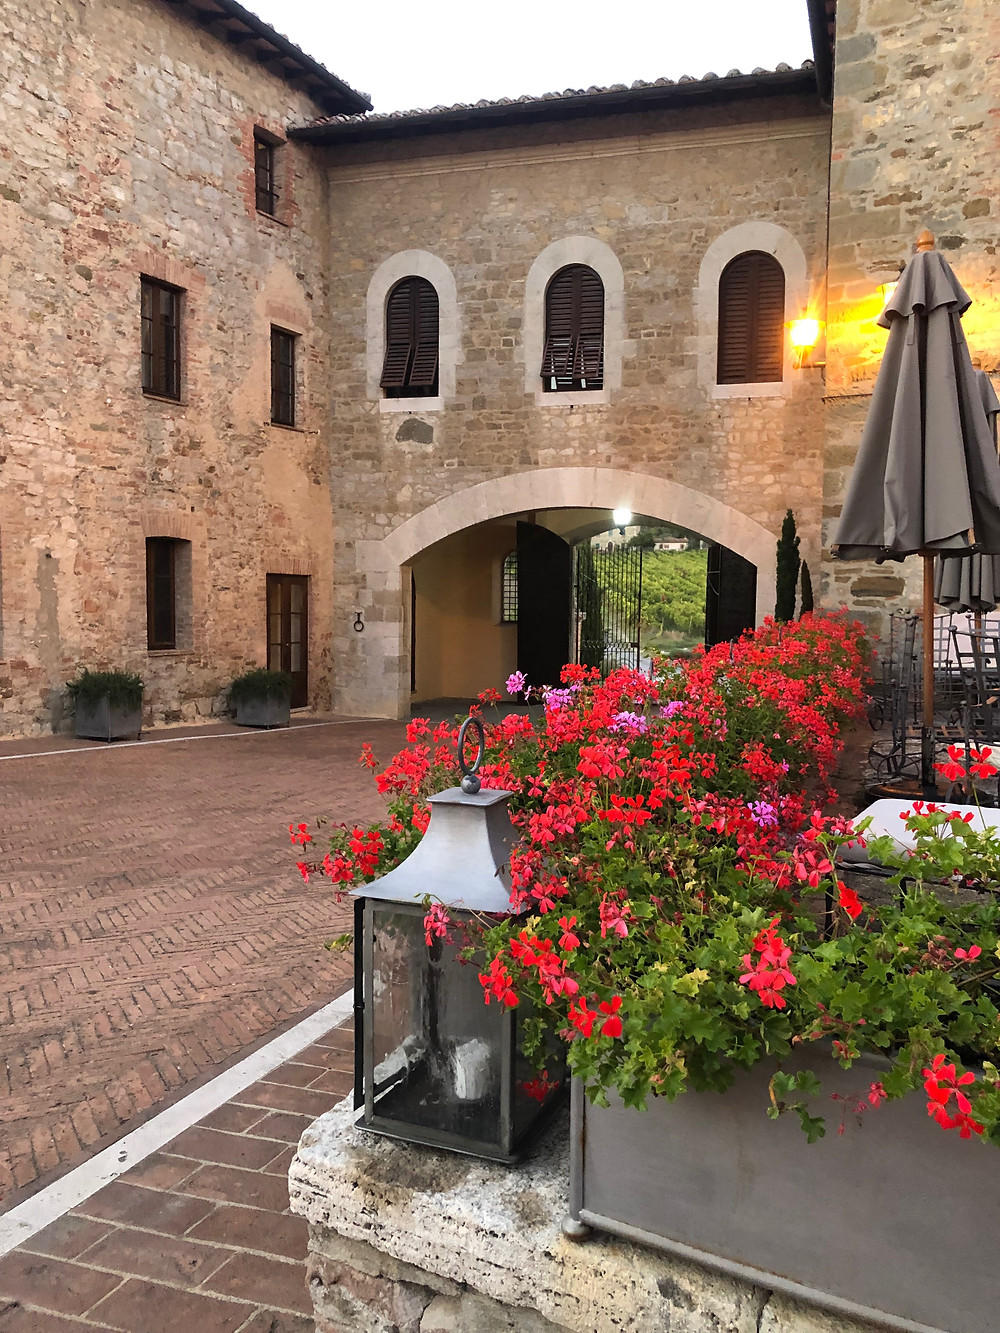 Hotel in Tuscany with a beautiful spa and surrounded by vineyards.